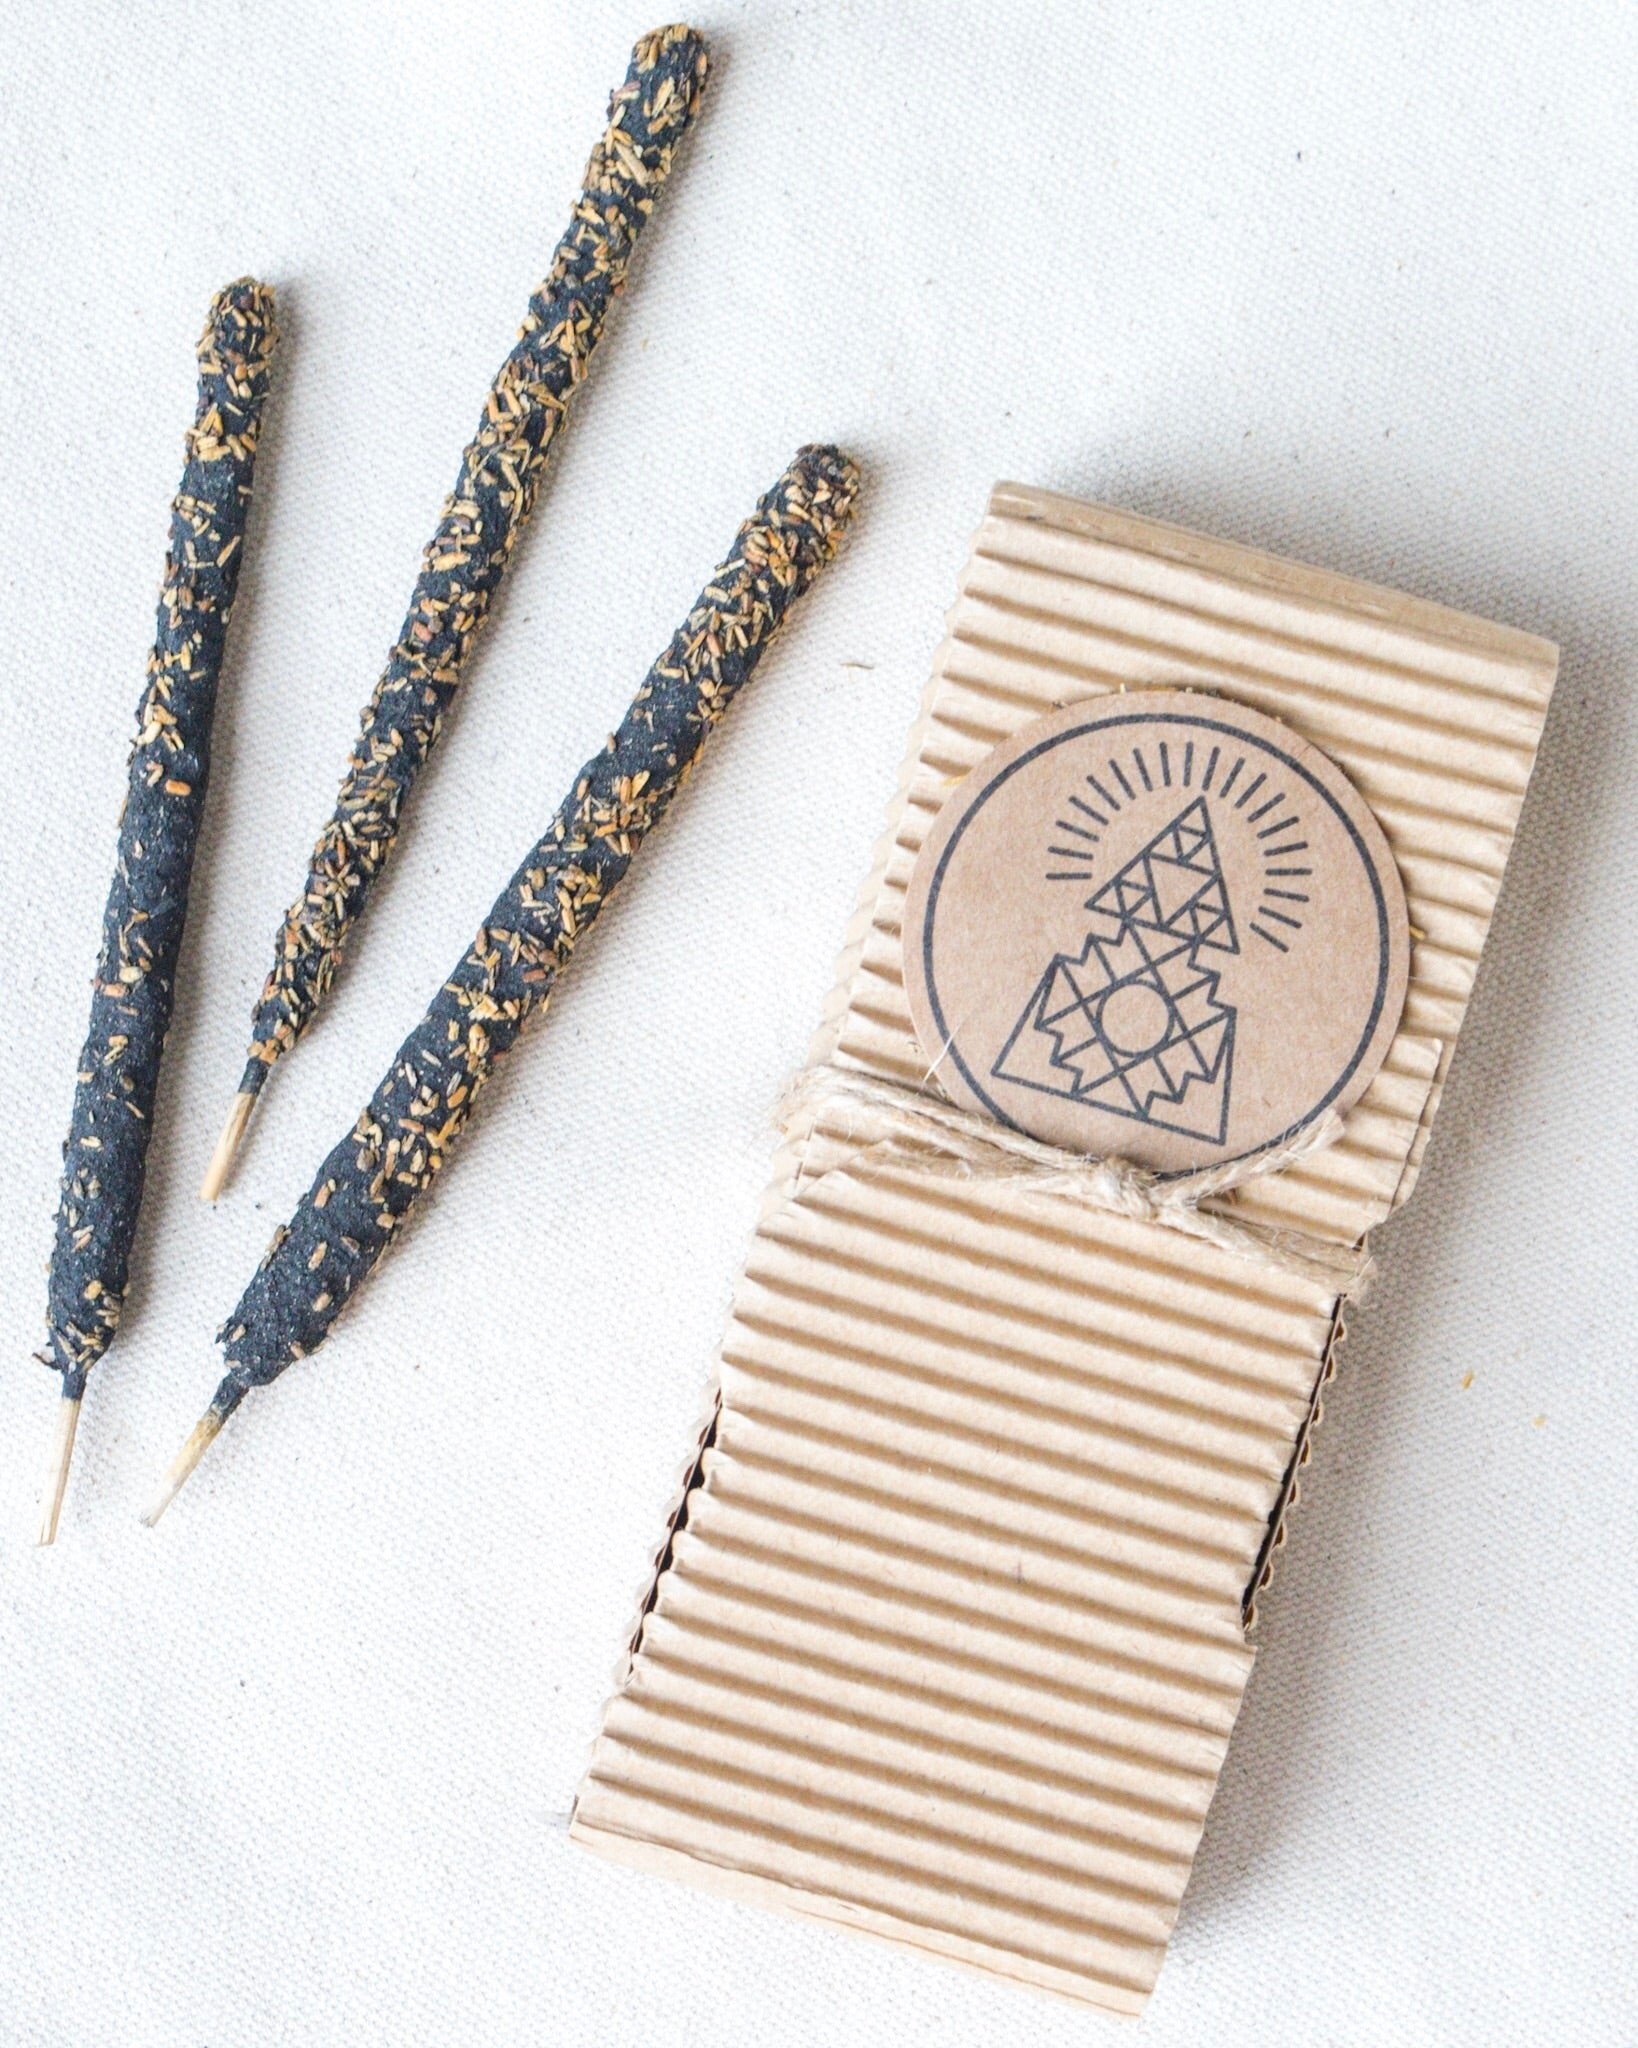 Breu Resin Incense Sticks | Palo Santo Blend